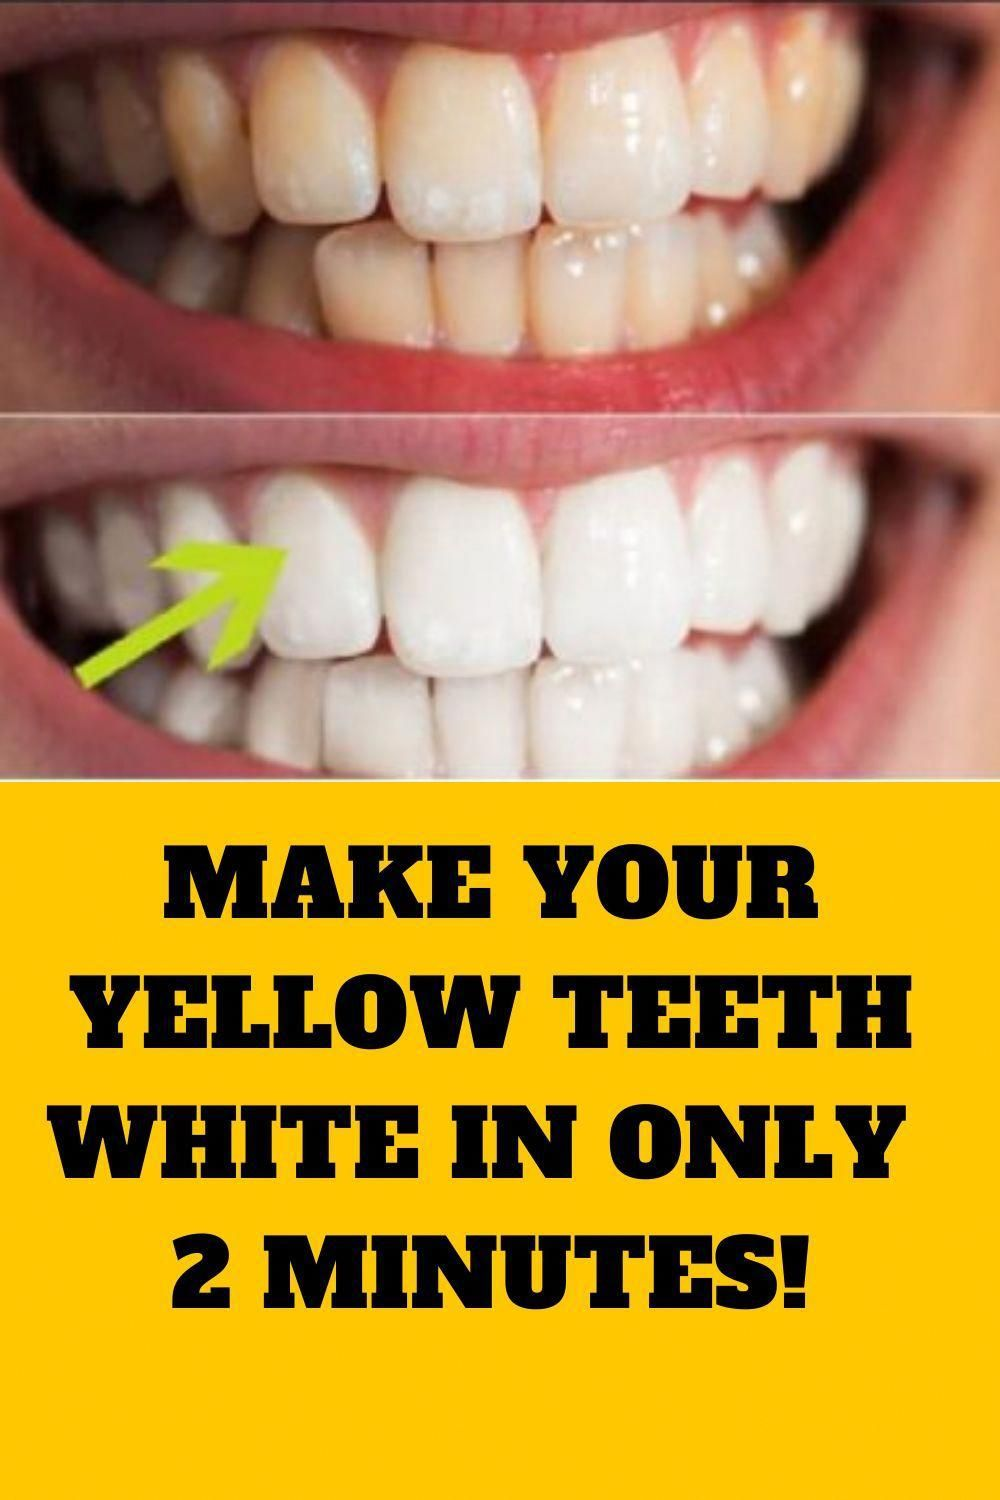 Make your yellow teeth white in only 2 minutes in 2020